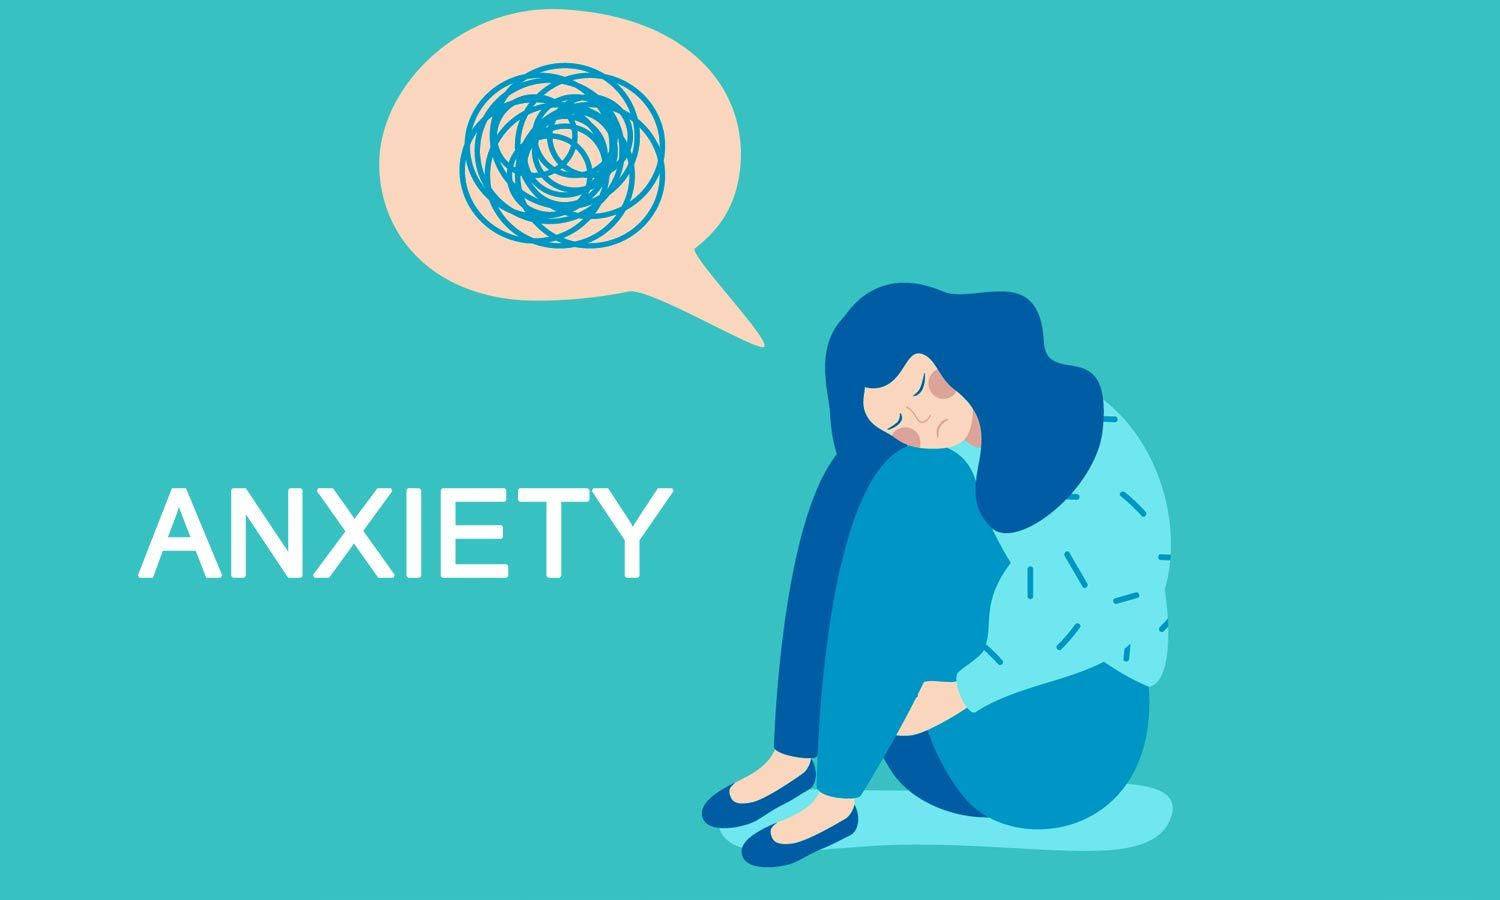 Yoga can reduce anxiety in adults with generalized anxiety ...